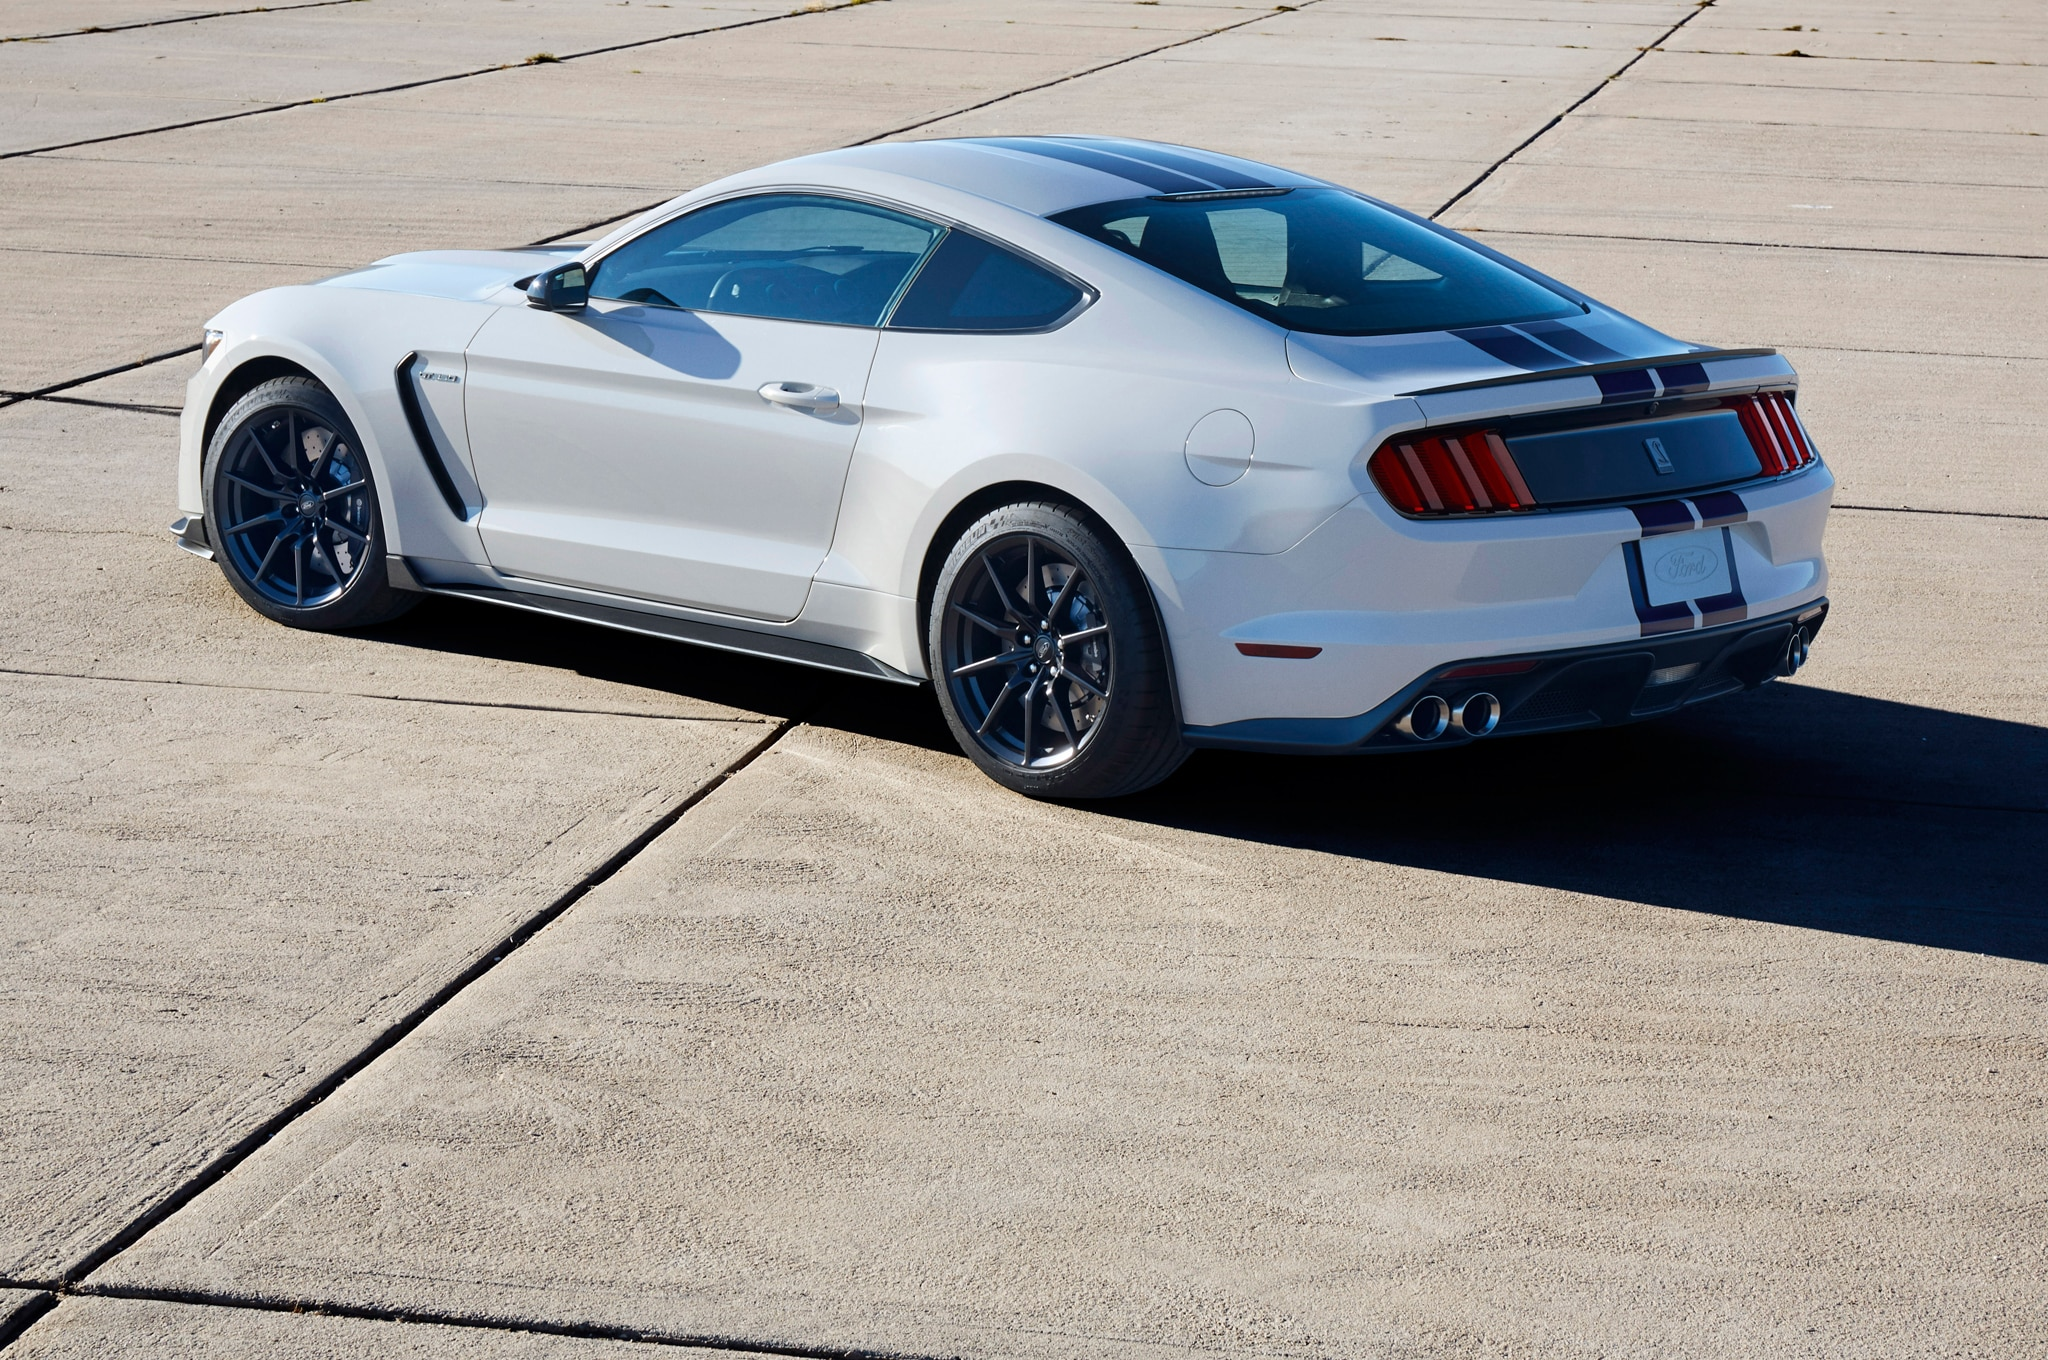 10 Things to Know about the Ford Shelby GT350 Mustang's V-8 Engine on